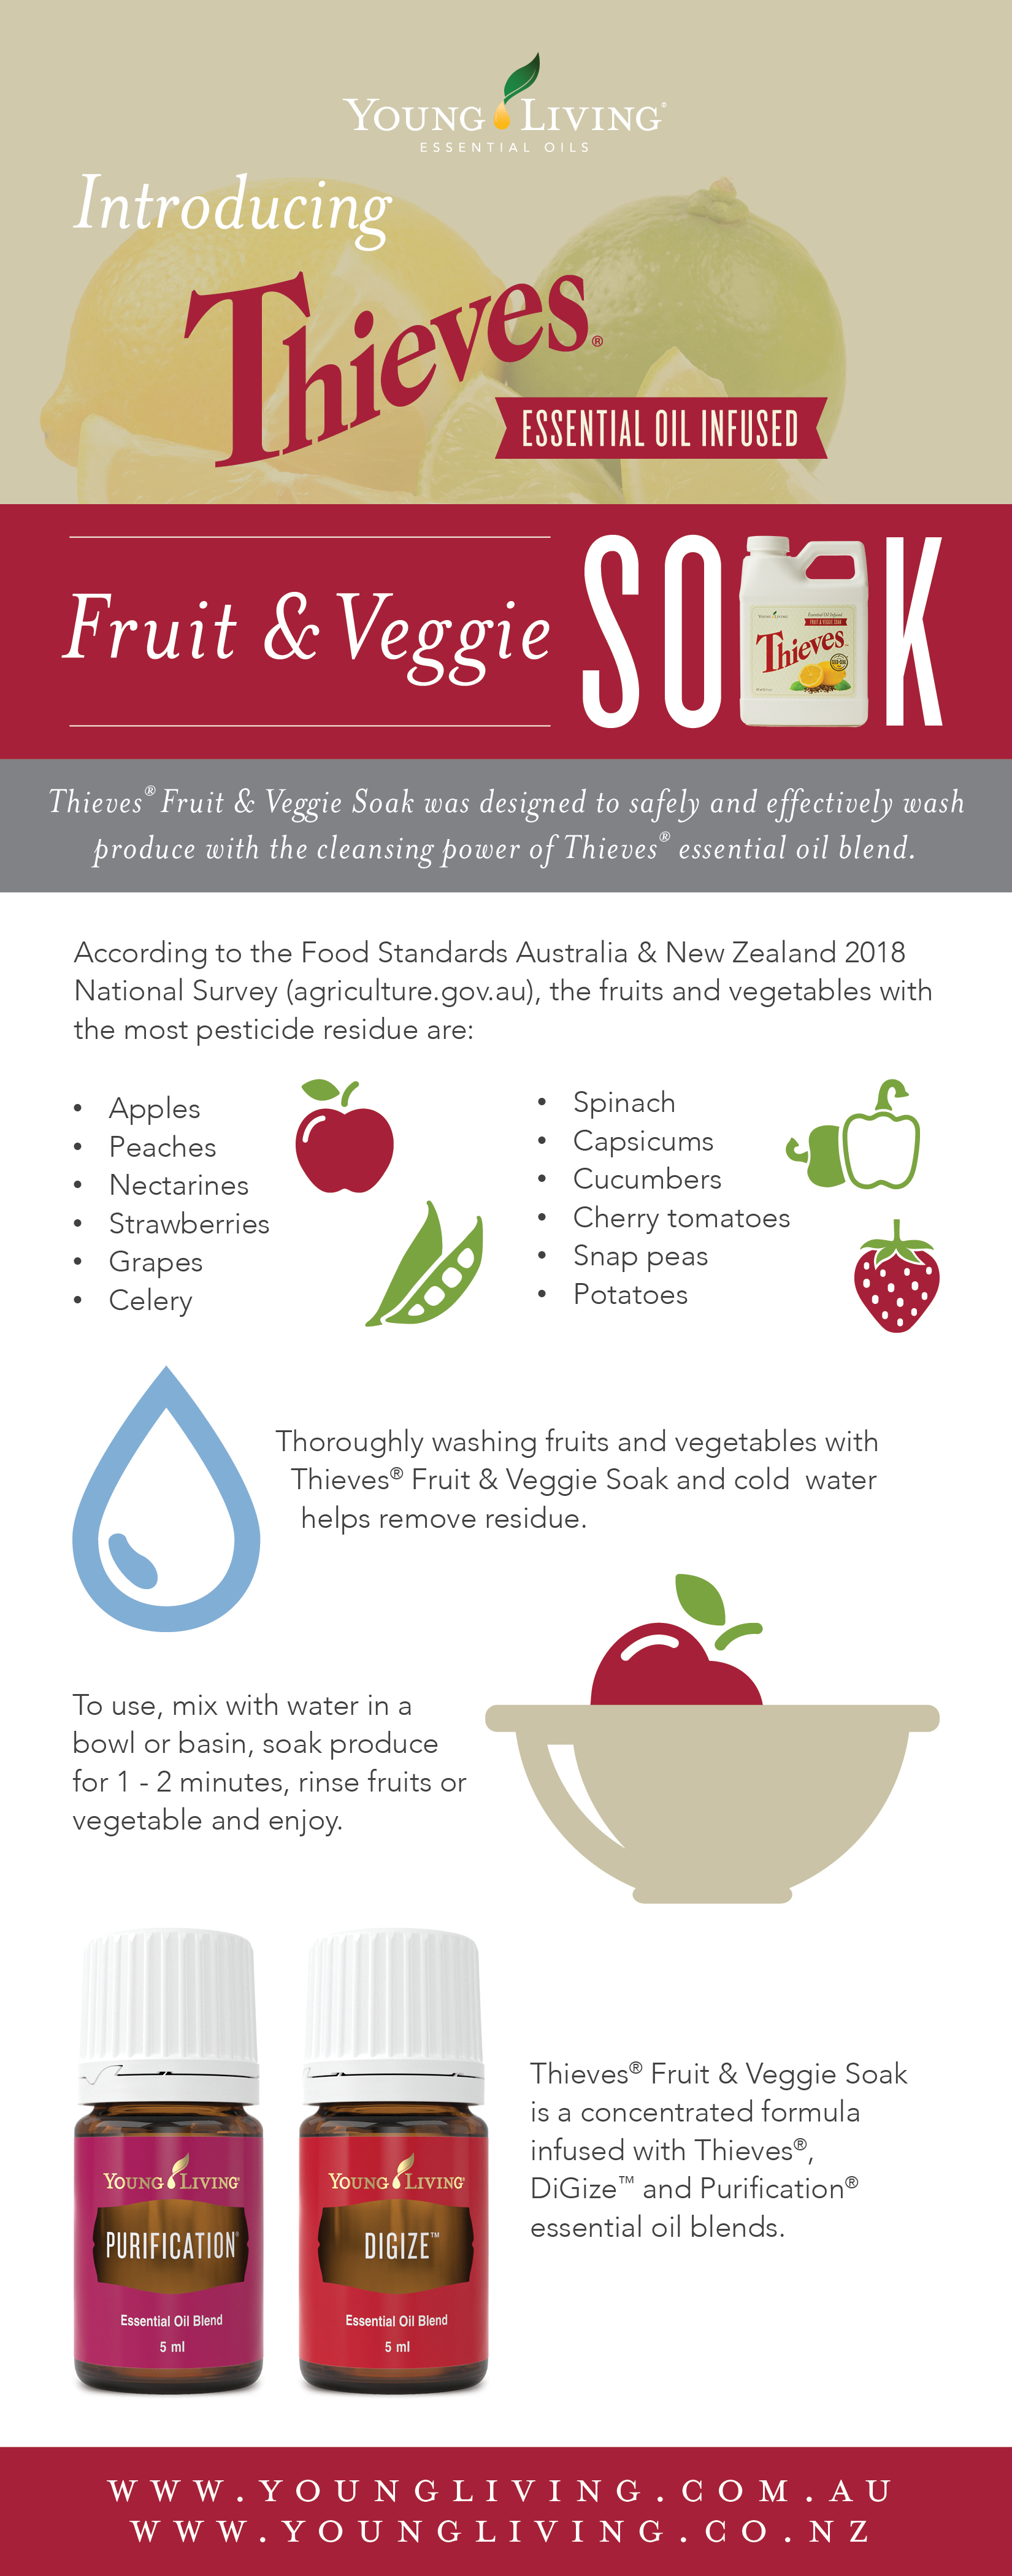 Thieves fruit and veggie soak young living infographic